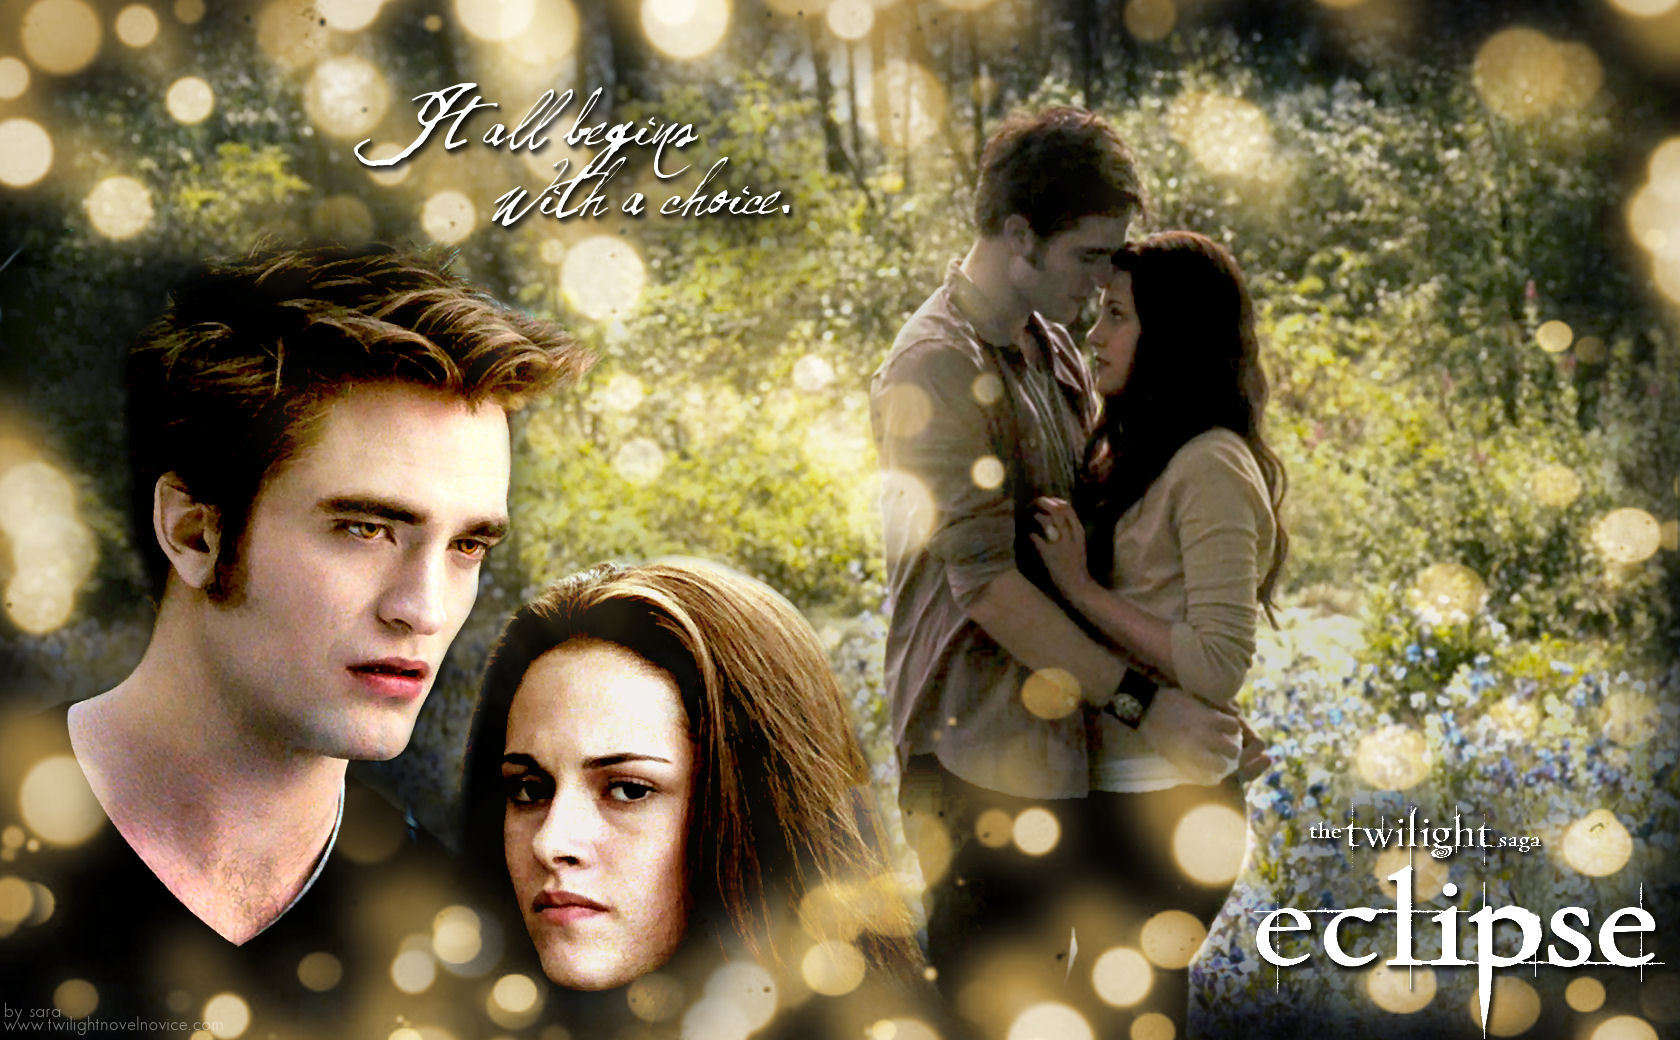 What was the moral of Twilight?